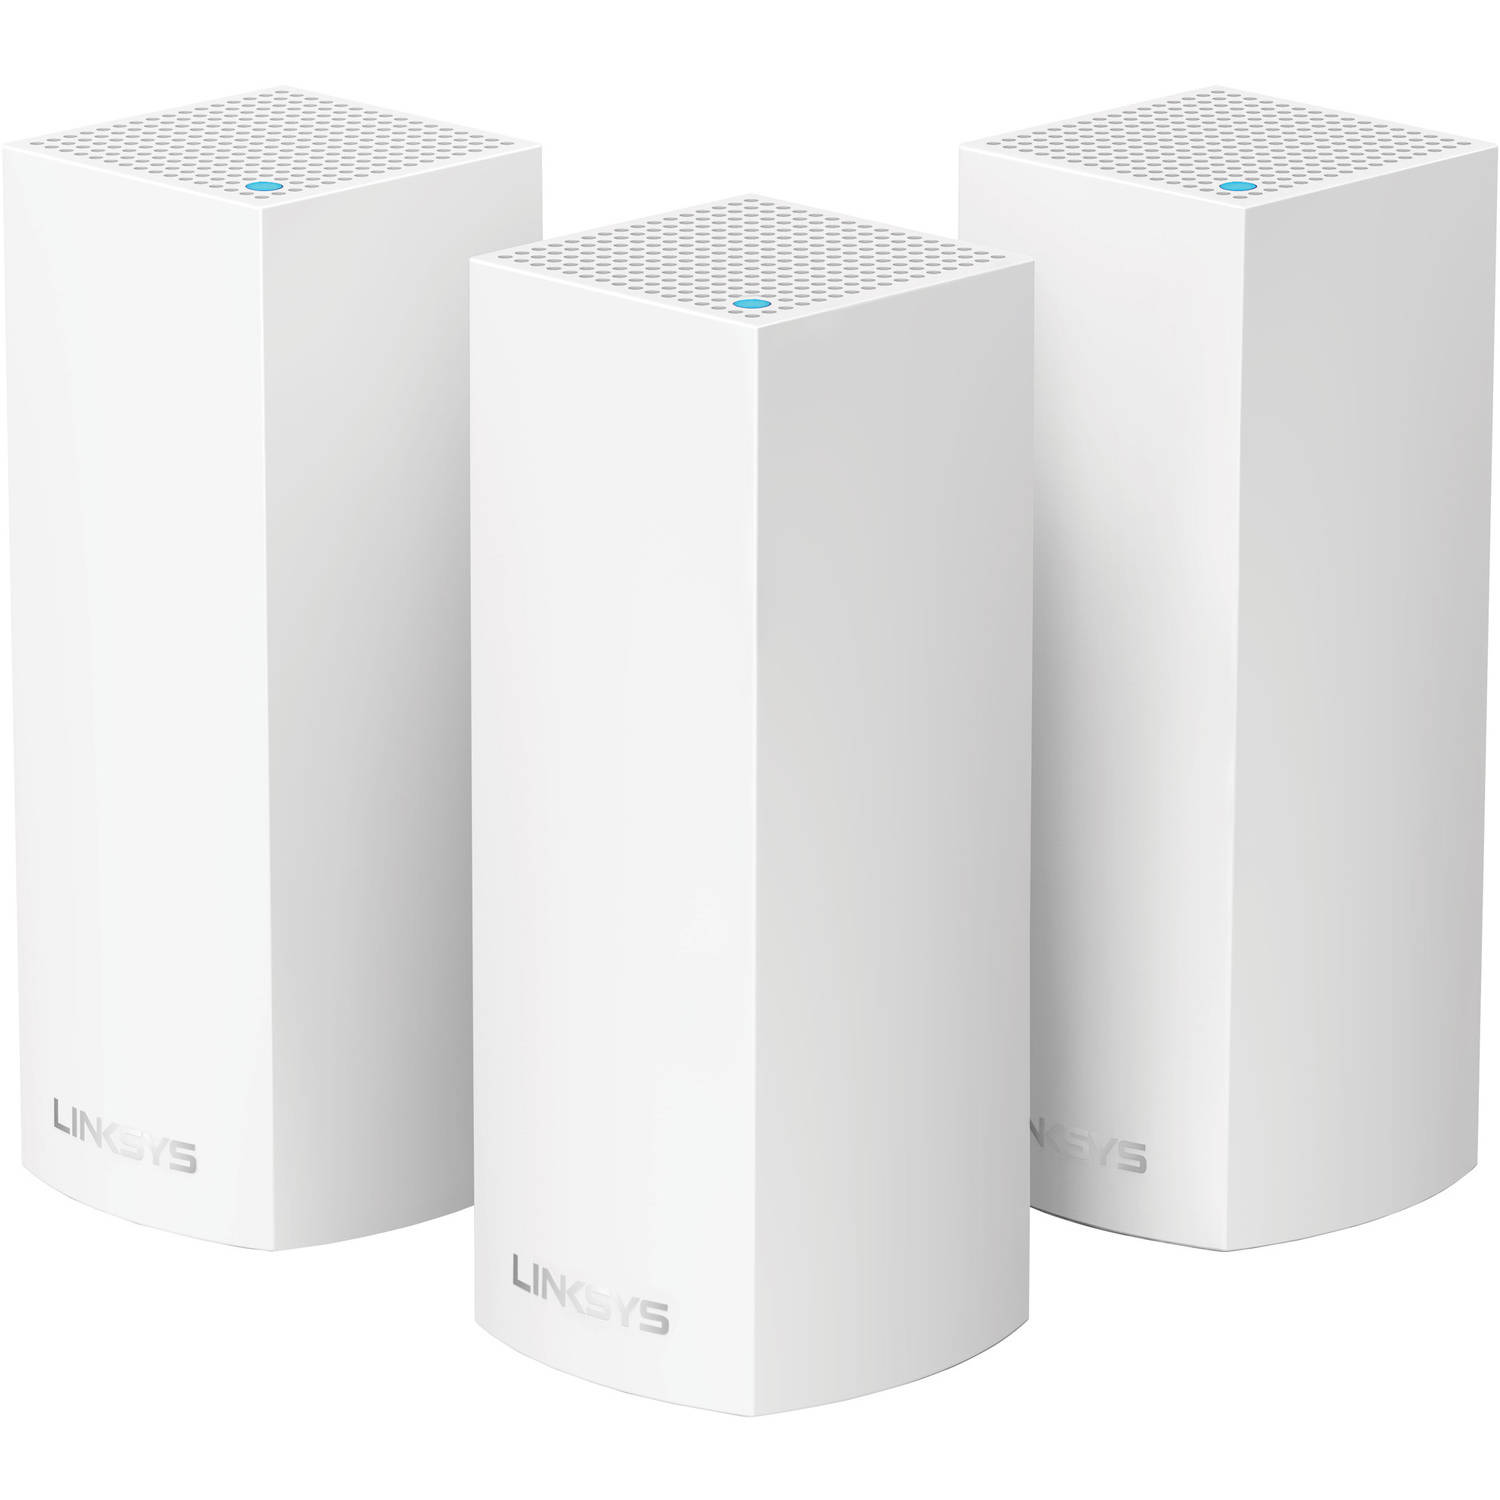 Linksys Velop AC6600 Whole Home WiFi, 3-Pack by Linksys